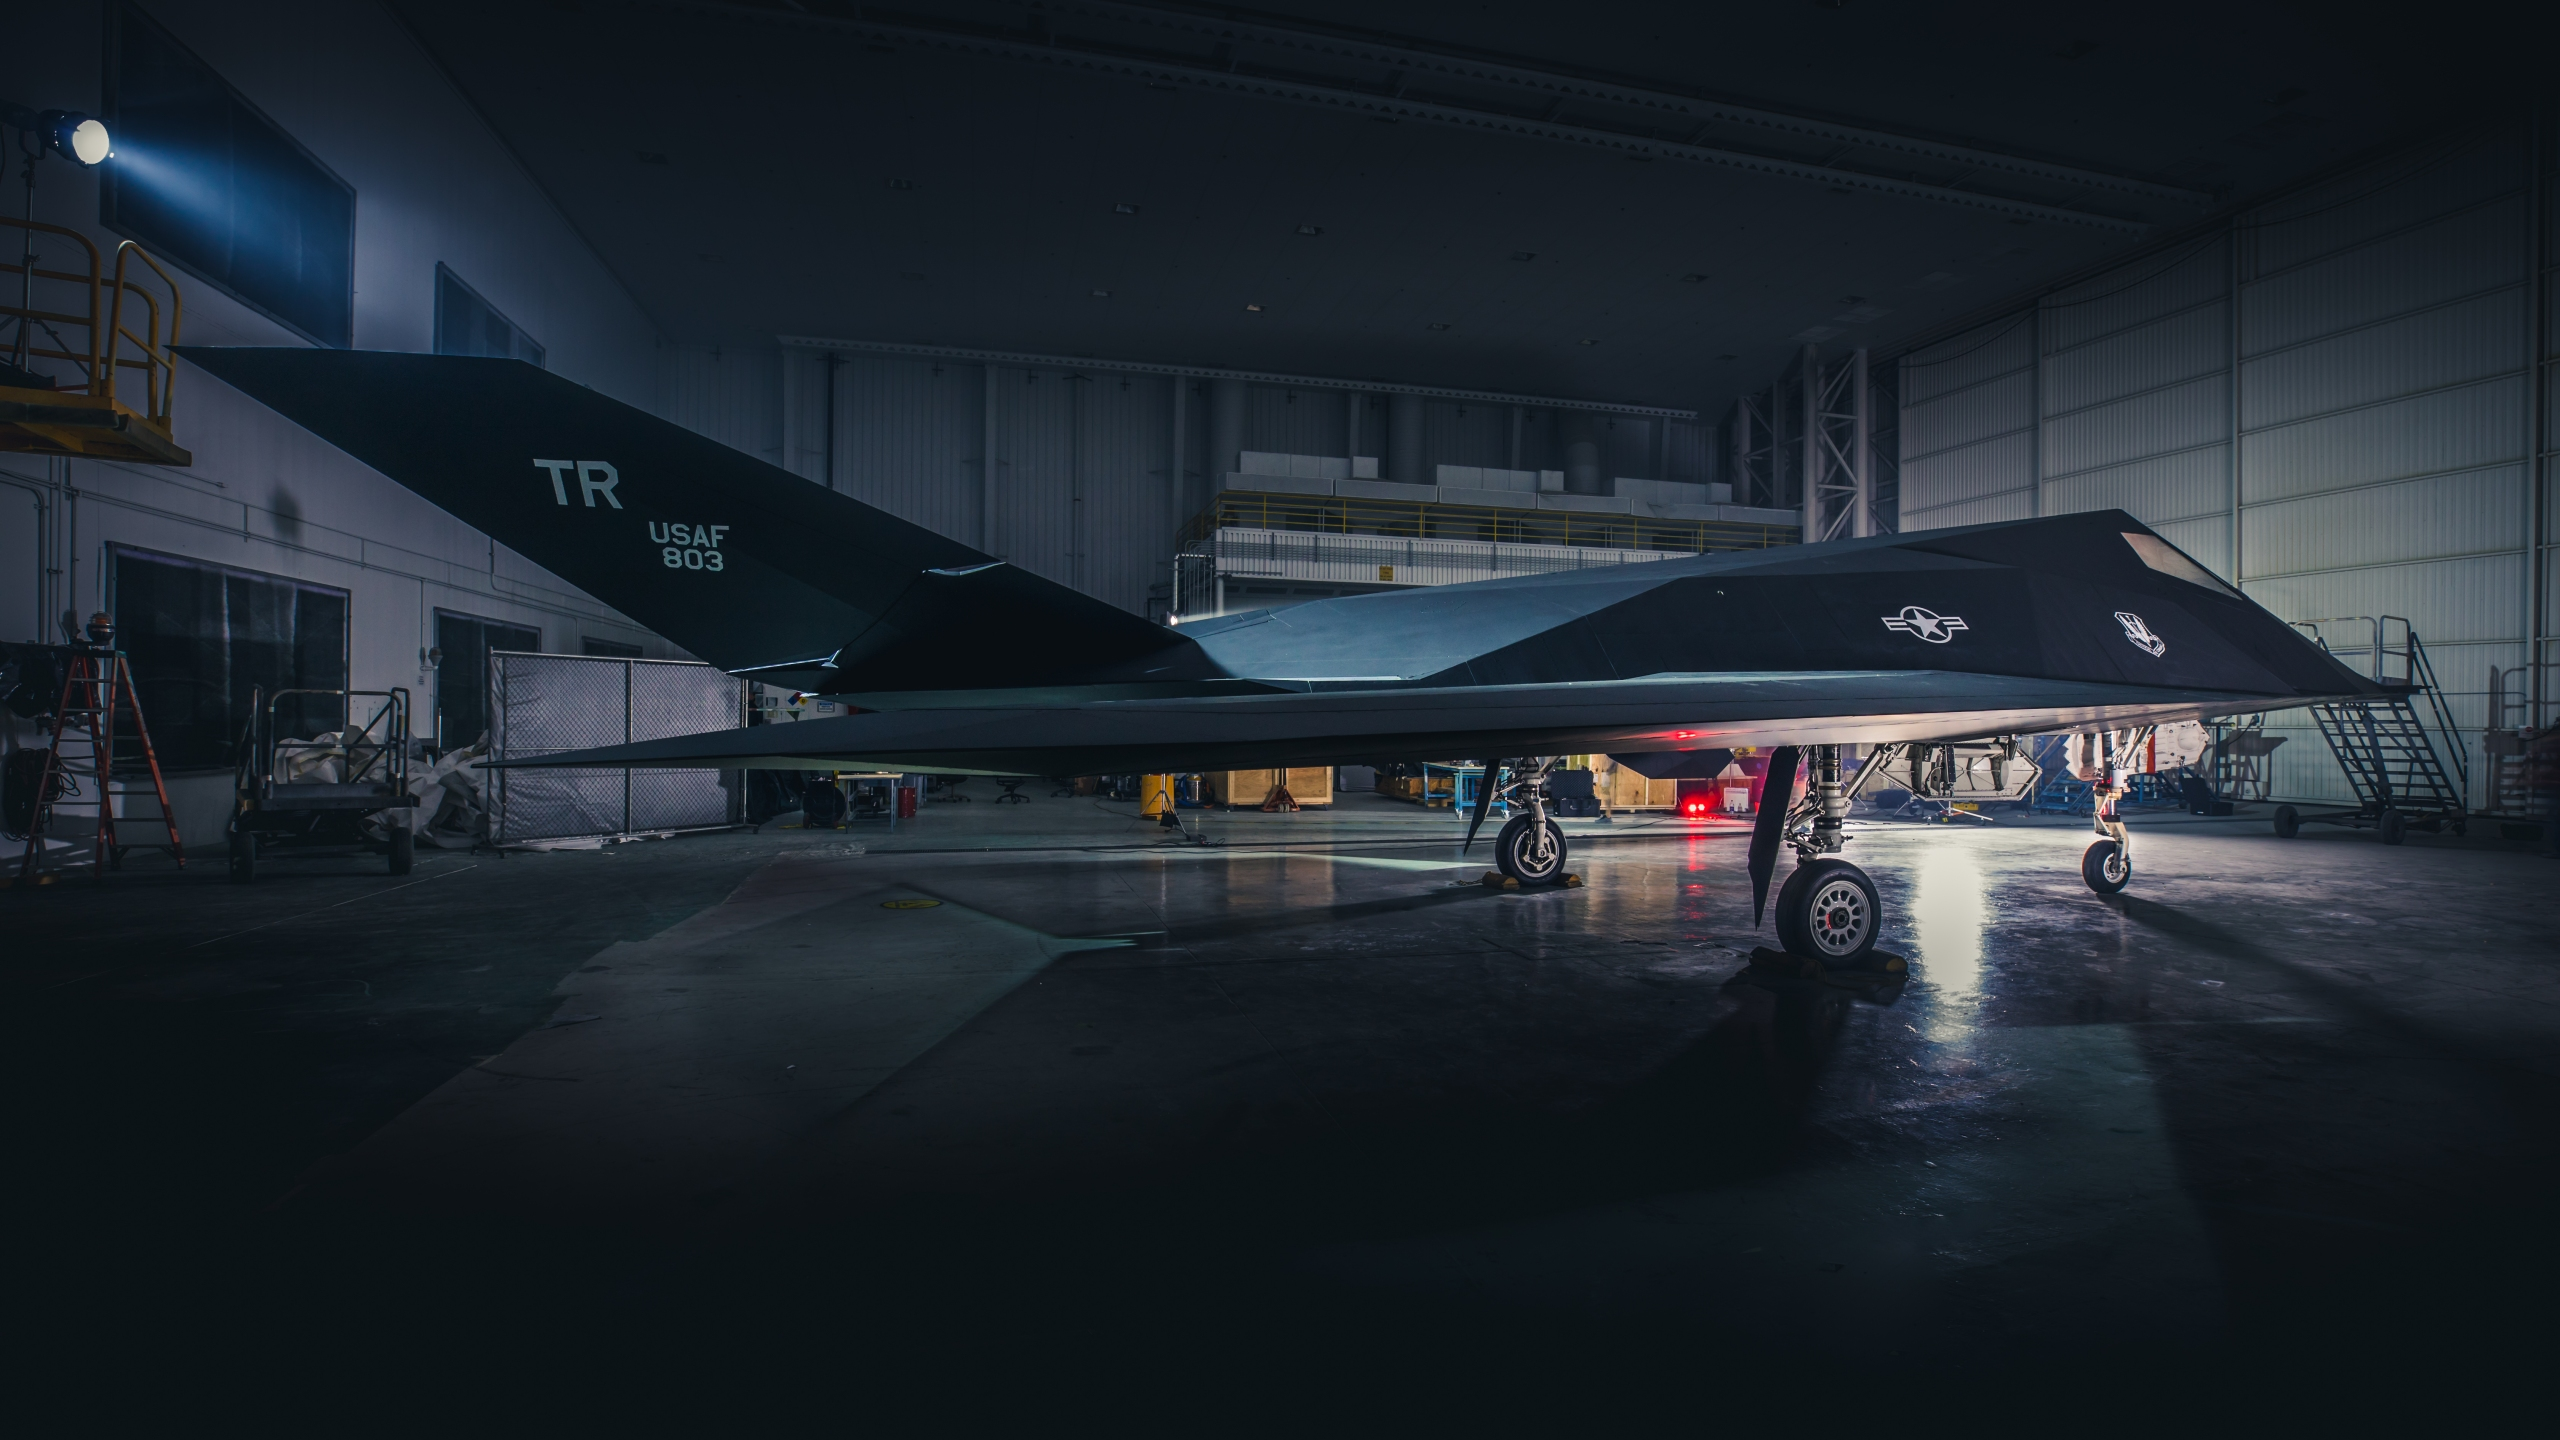 Ronald Reagan Library F-117 Restoration photo shoot on Oct. 30, 2019. (Credit: Garry Tice/Lockheed Martin Photography)